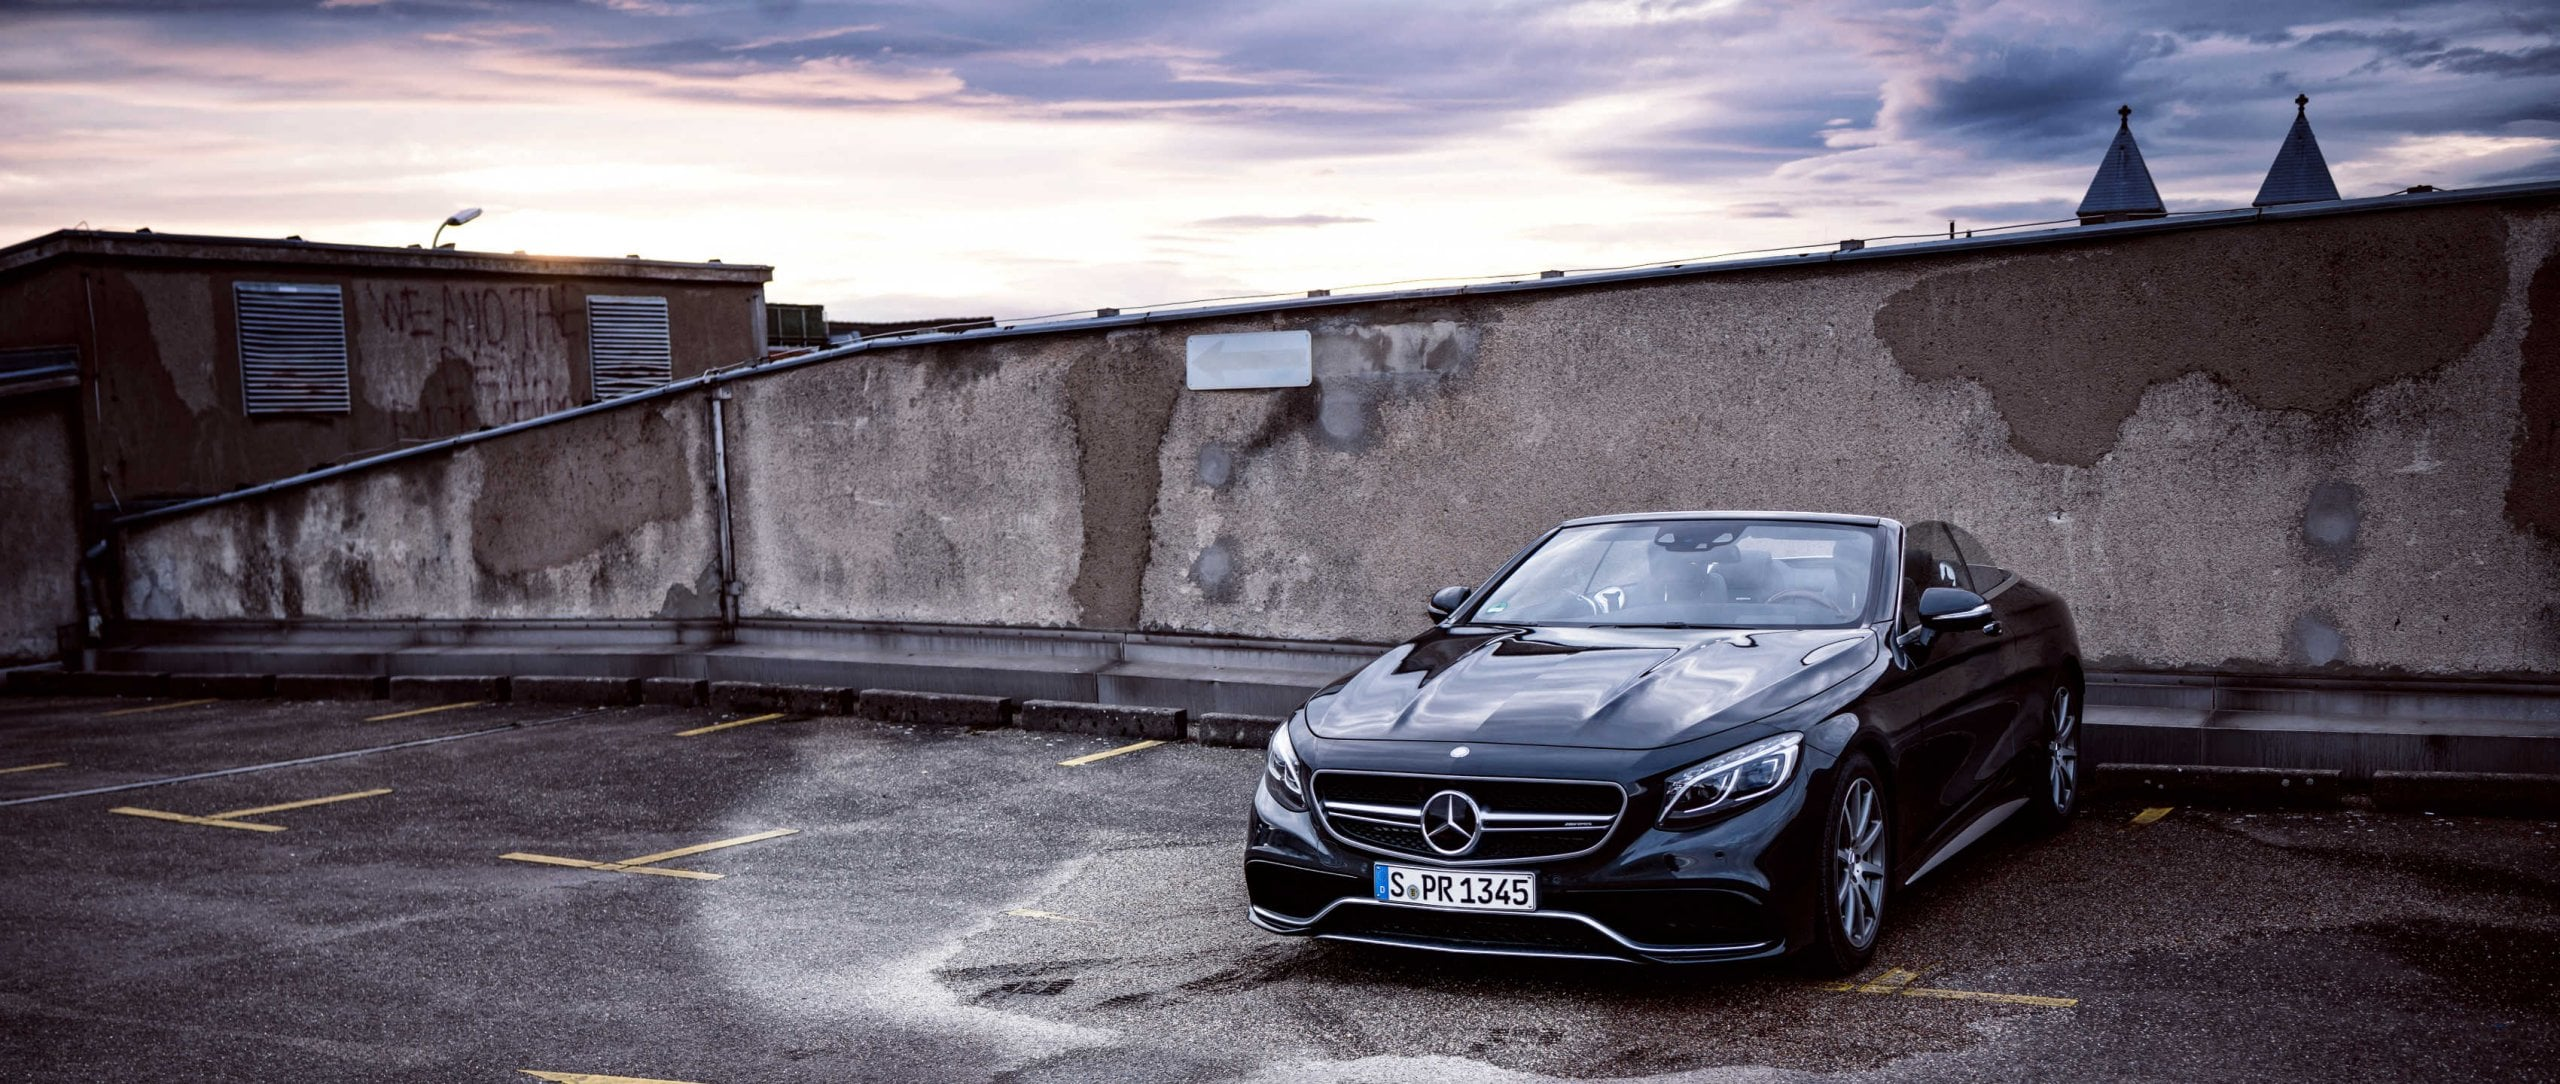 Mercedes-AMG S 63 Cabriolet (A 217): Front view.